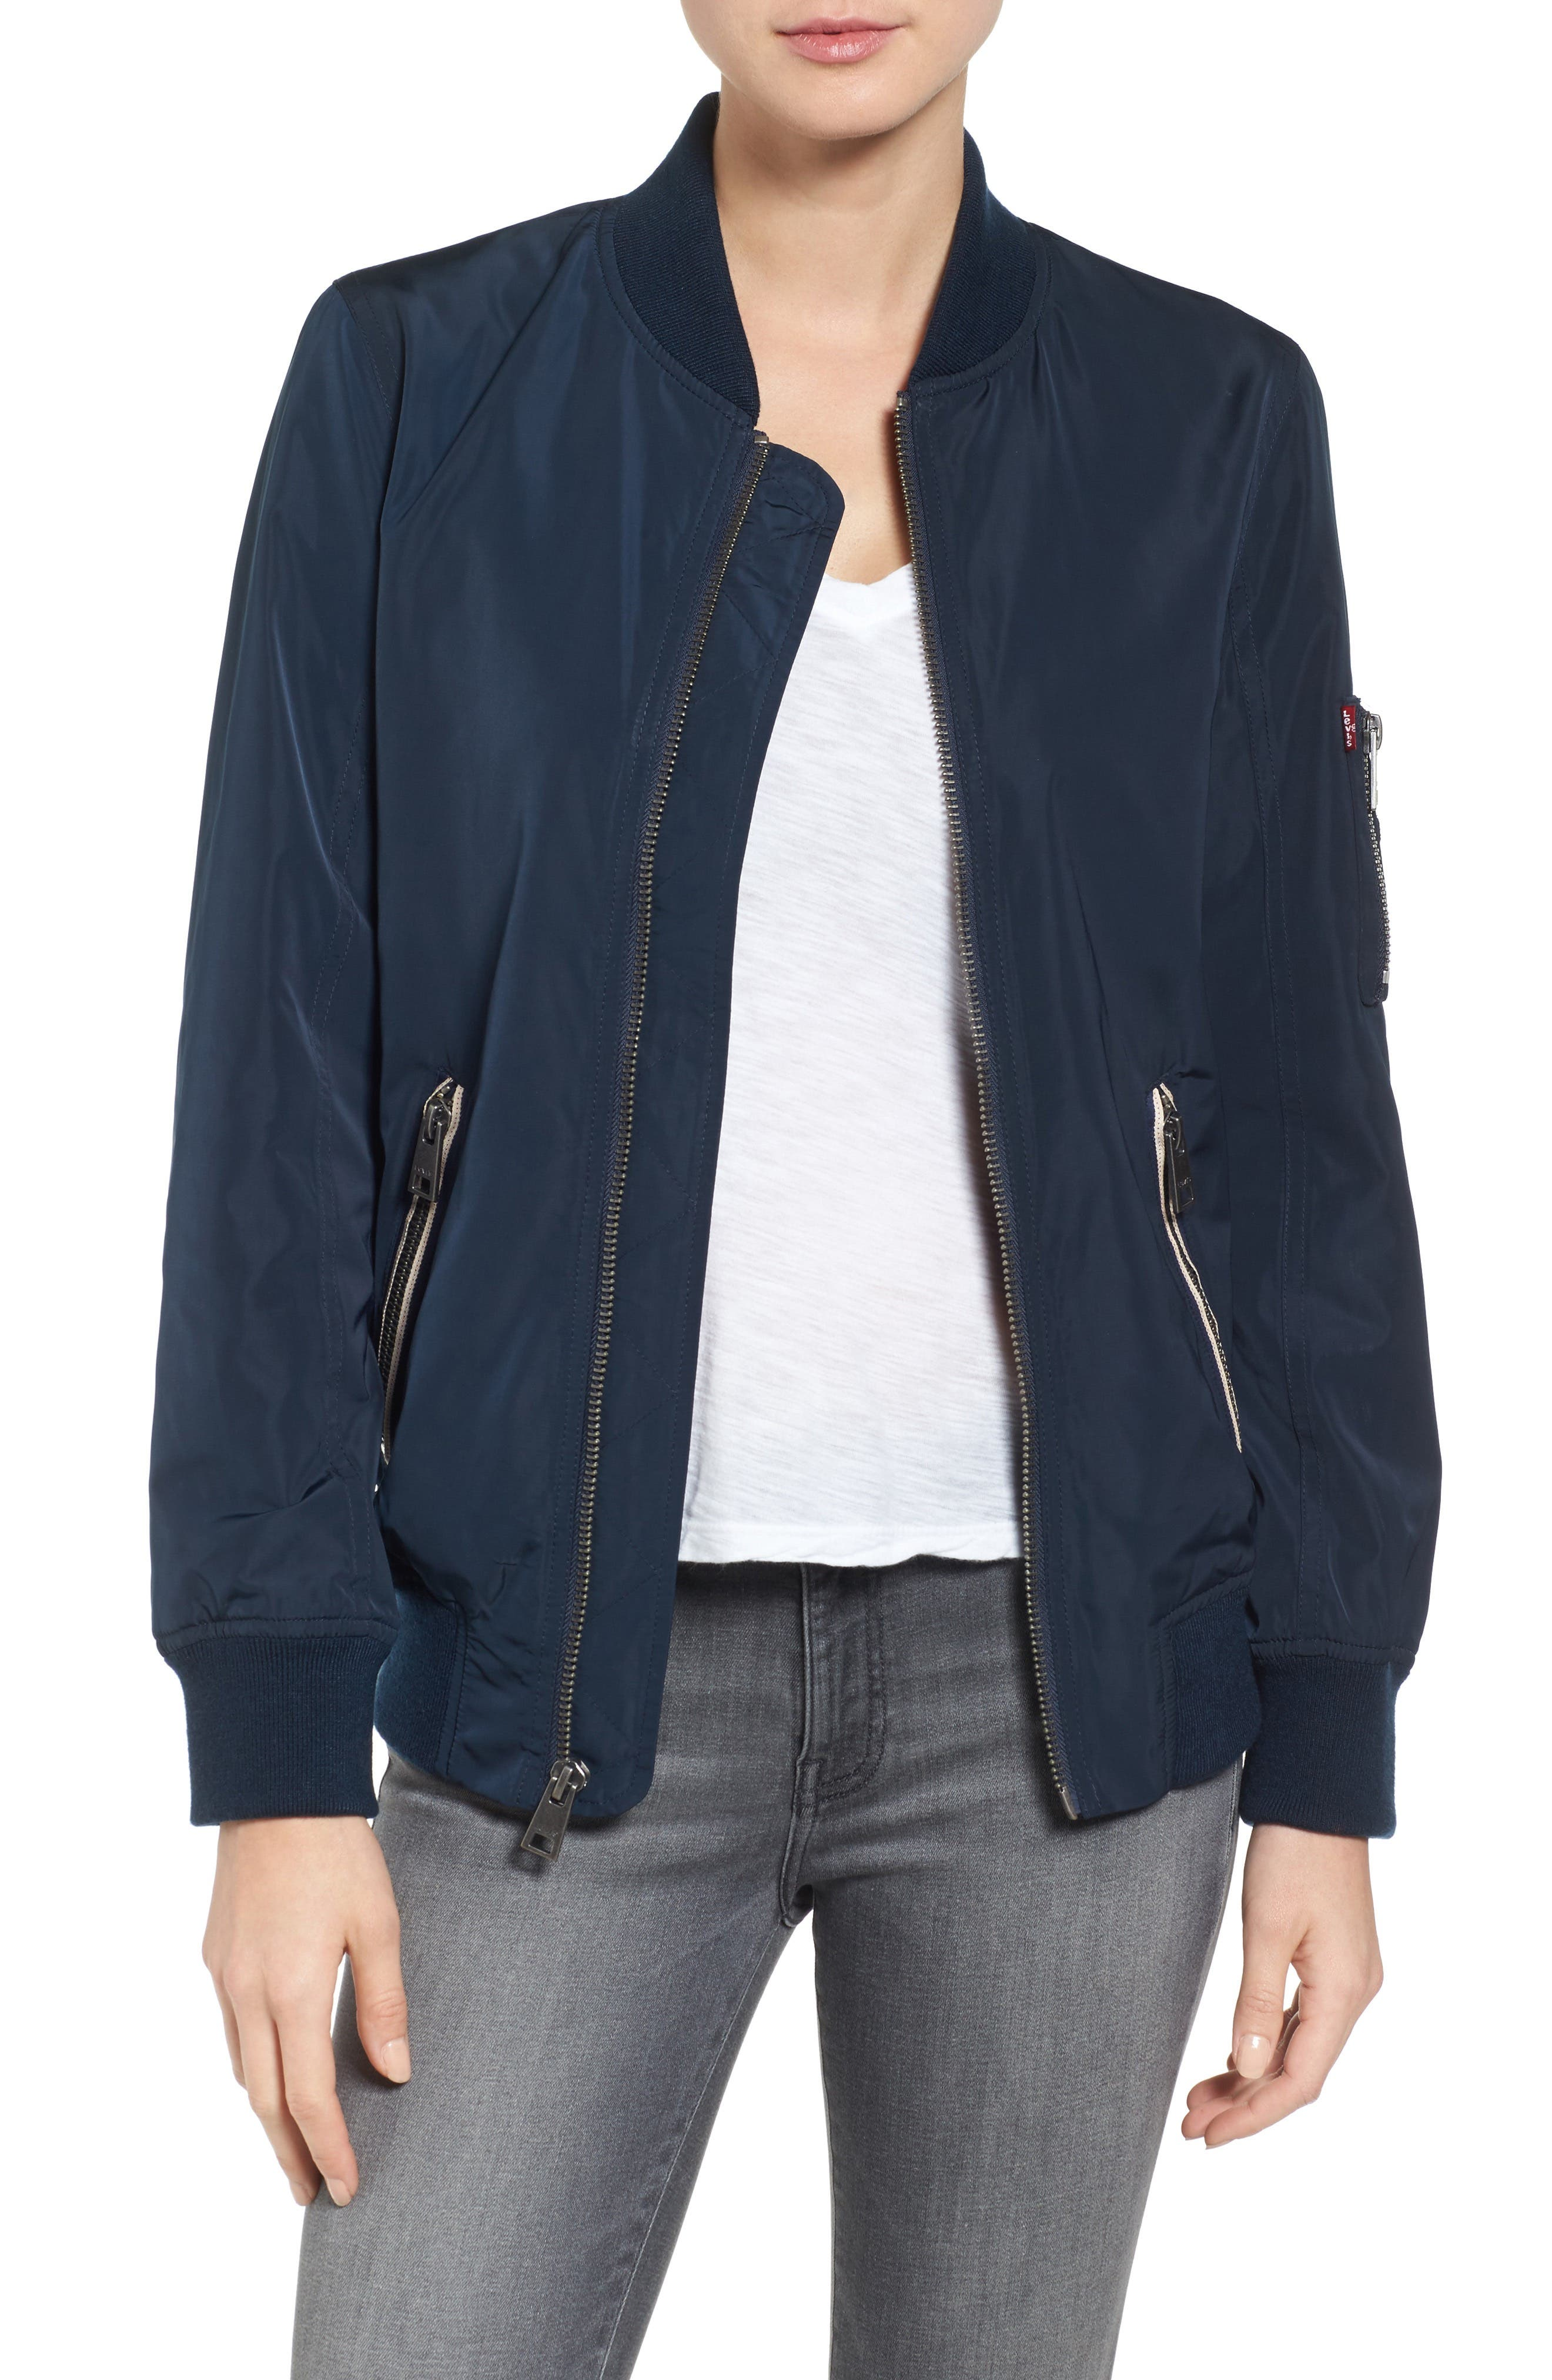 Levi's MA-1 Satin Bomber Jacket,                             Main thumbnail 1, color,                             Navy